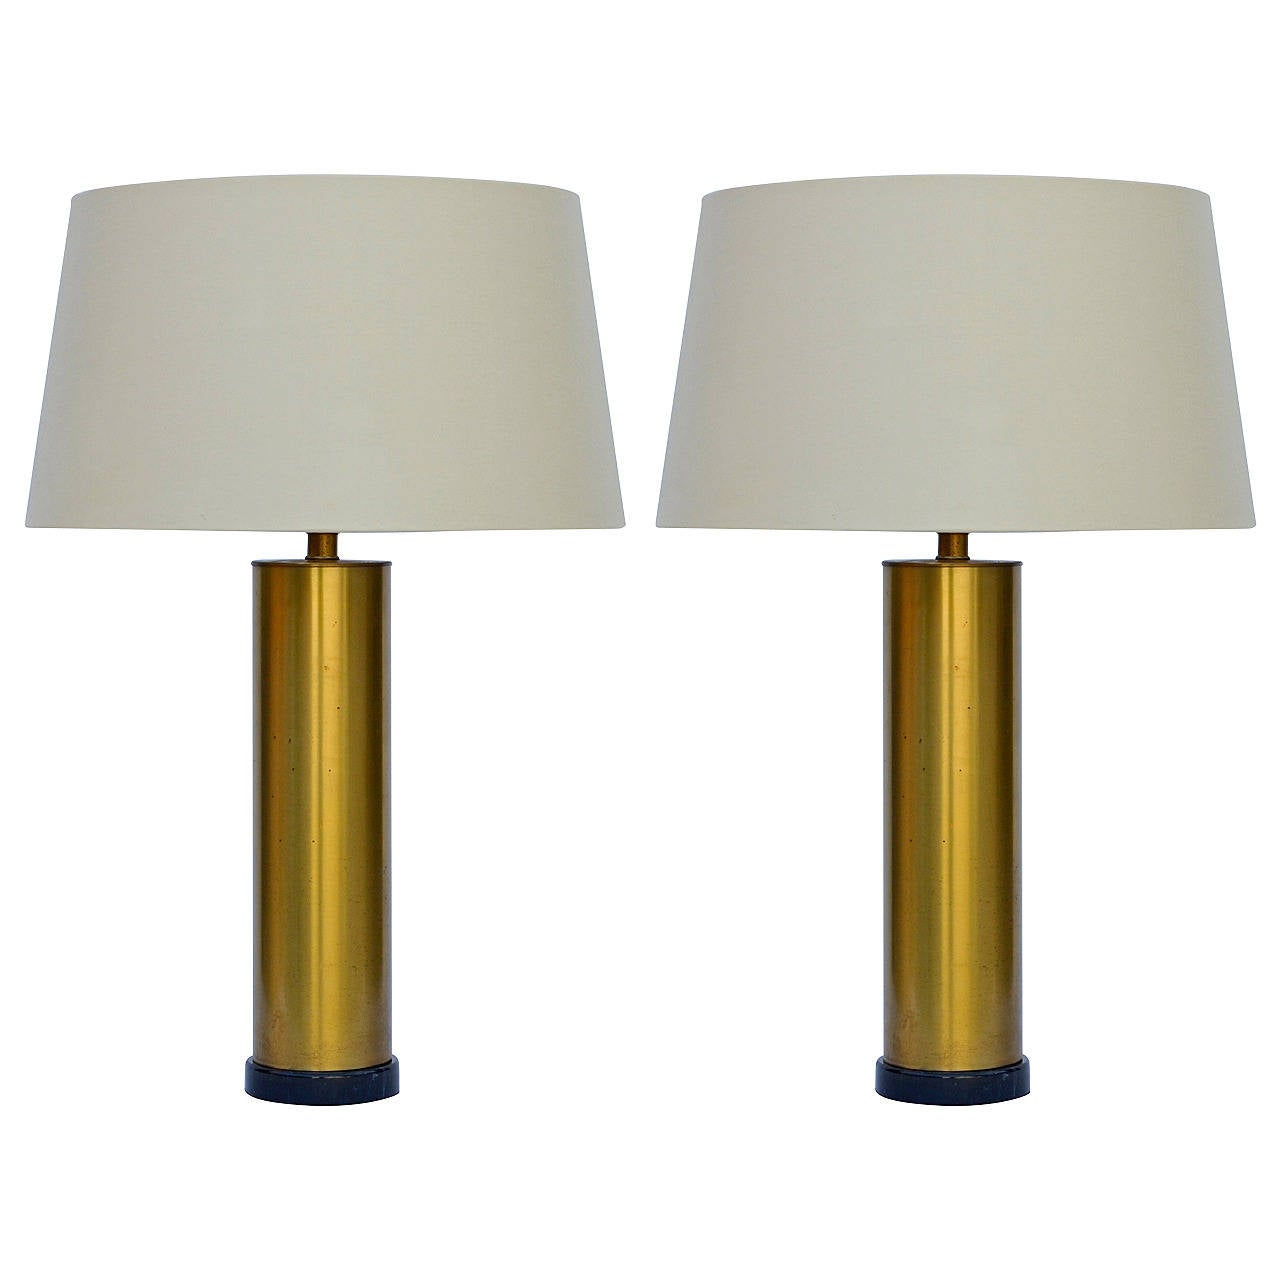 Pair Of Chic Brass Column Lamps With Custom Silk Shades At